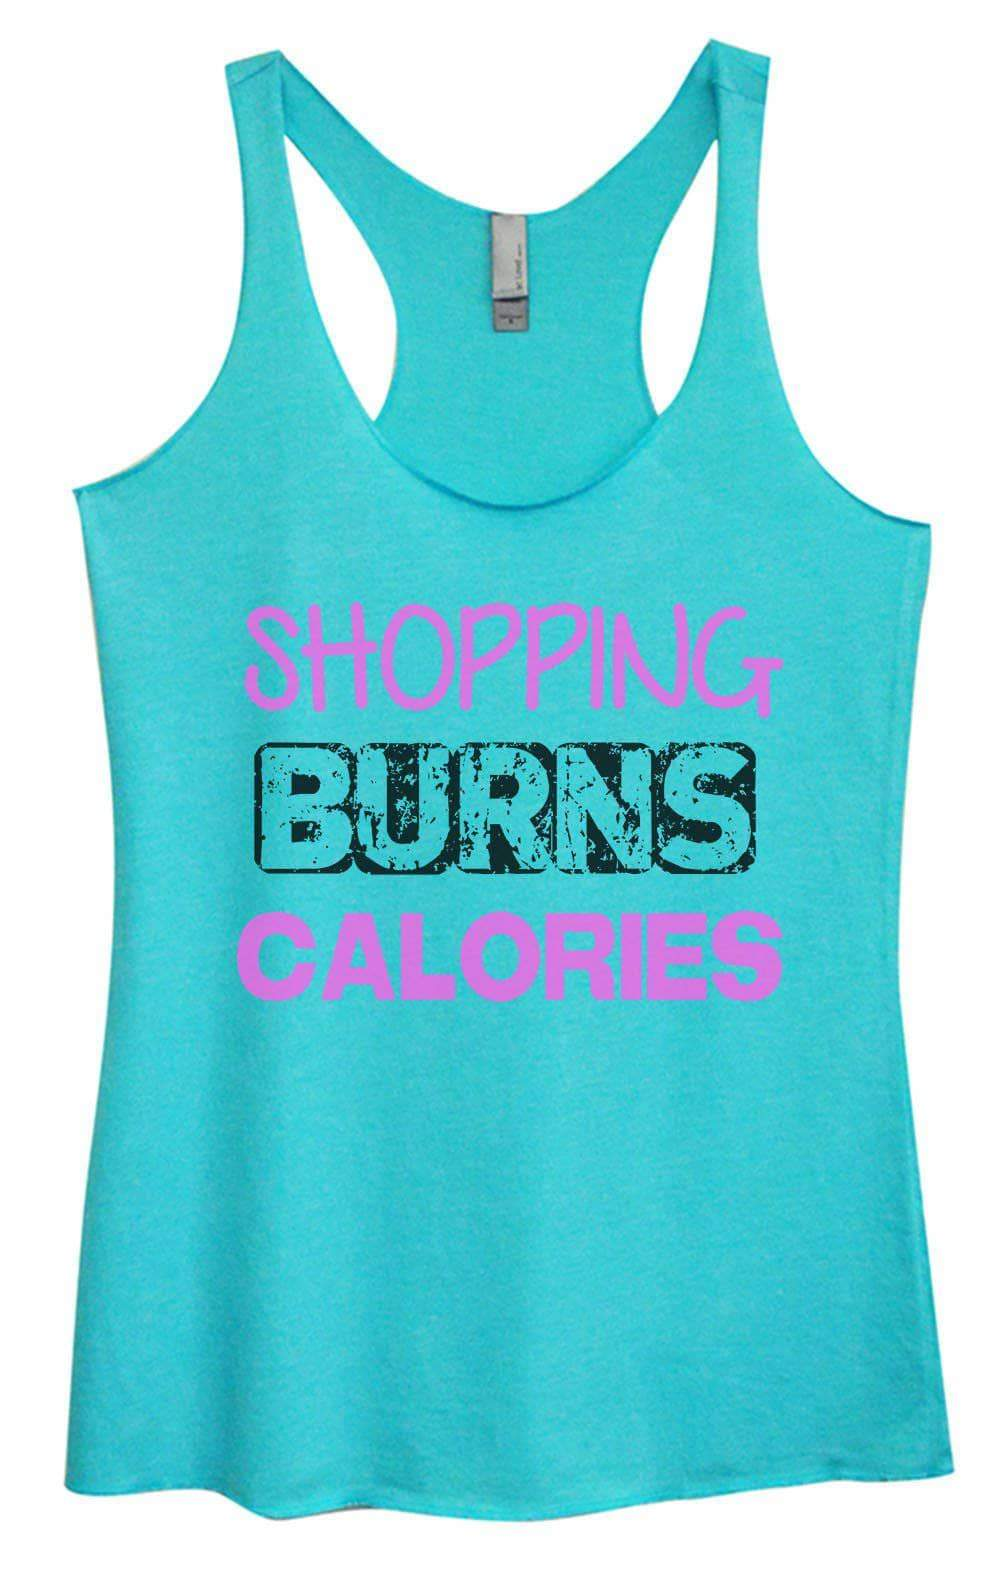 Womens Tri-Blend Tank Top - Shopping Burns Calories Small Womens Tank Tops Vintage Blue